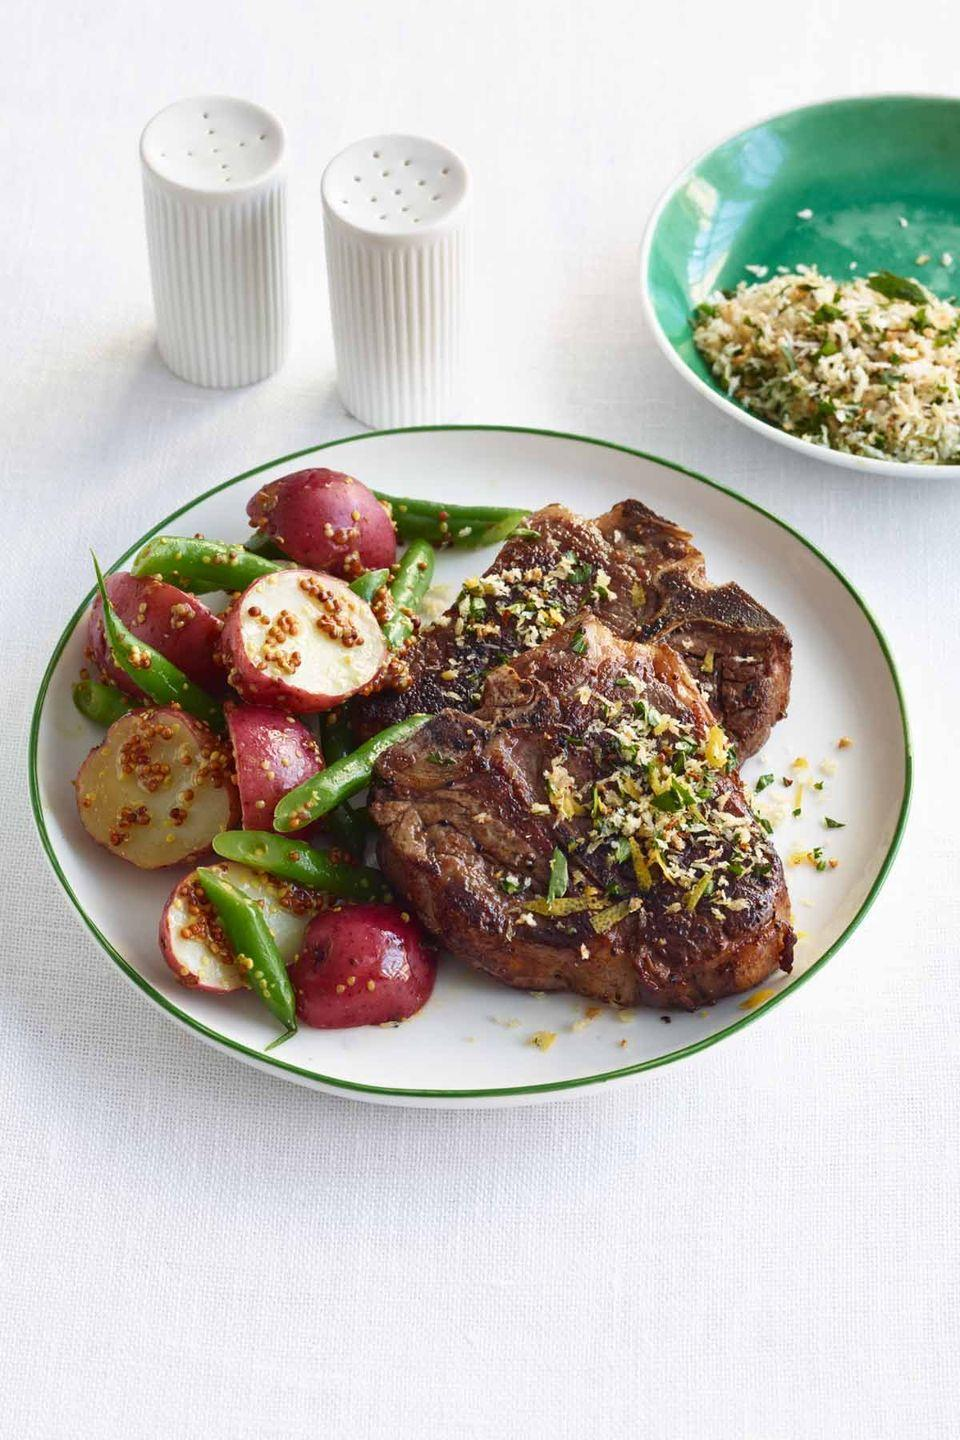 """<p>Surprise Mom with a creative take on an old-school steak and potatoes dinner: Lamb fills in for the beef, while whole-grain mustard adds a big boost of flavor. </p><p><a href=""""https://www.womansday.com/food-recipes/food-drinks/recipes/a12531/seared-lamb-mustard-potatoes-green-beans-recipe-wdy0514/"""" rel=""""nofollow noopener"""" target=""""_blank"""" data-ylk=""""slk:Get the recipe for Seared Lamb with Mustard Potatoes and Green Beans."""" class=""""link rapid-noclick-resp""""><em>Get the recipe for Seared Lamb with Mustard Potatoes and Green Beans.</em></a> </p>"""